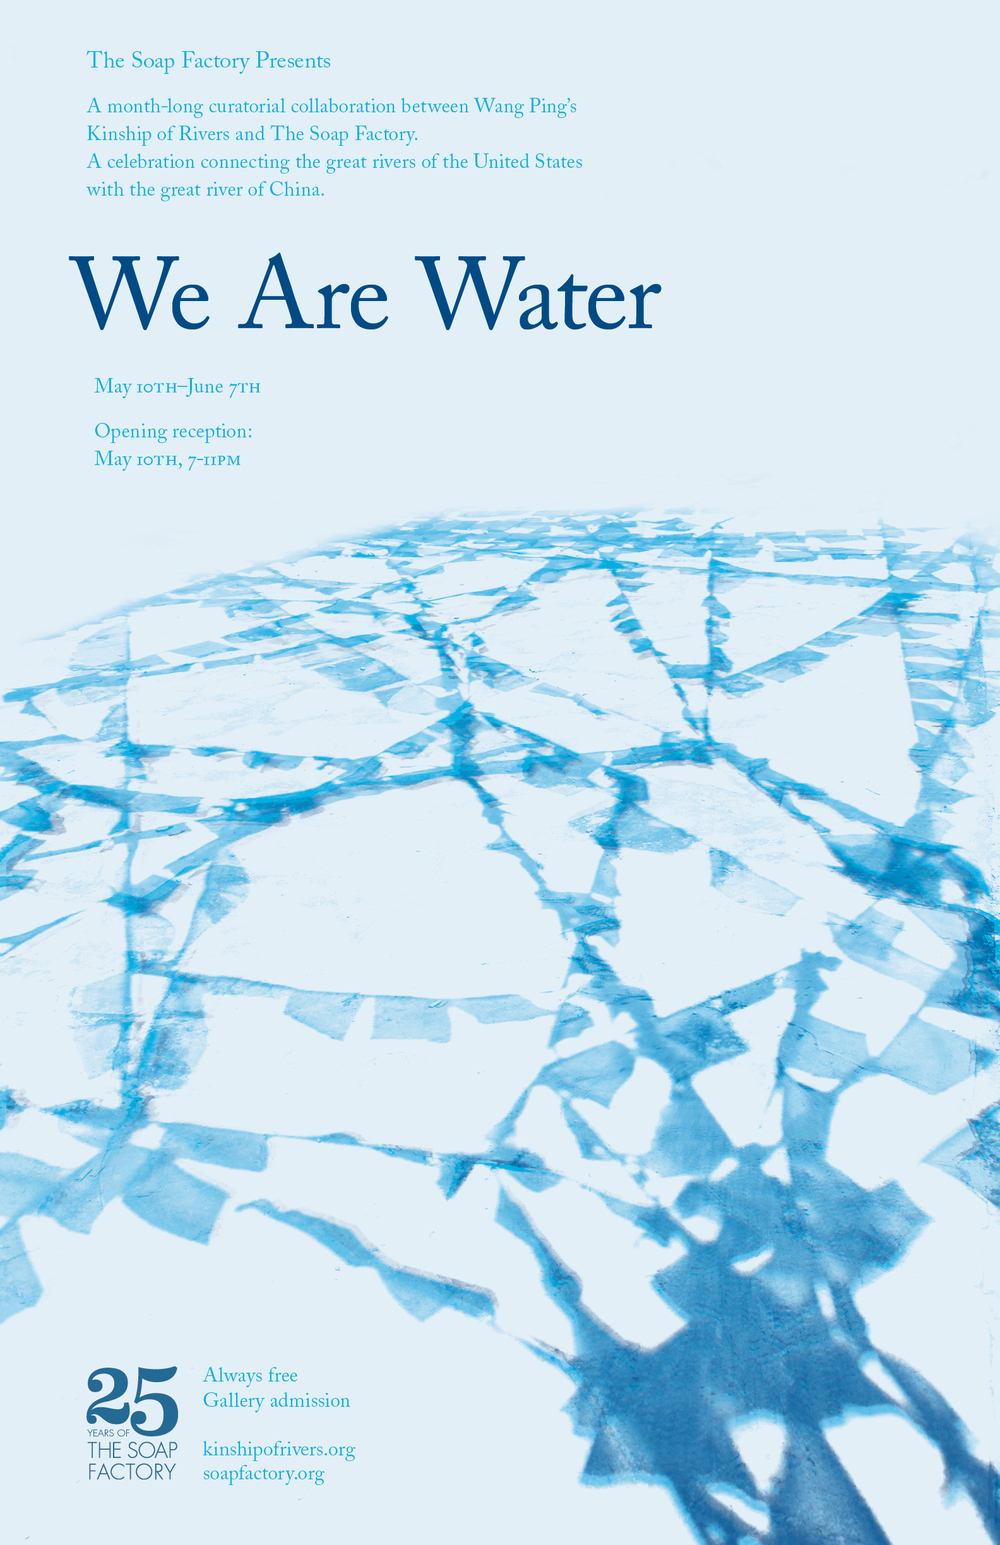 We Are Water poster. Designed by The MVA Studio, 2014. Photograph courtesy Wang Ping.